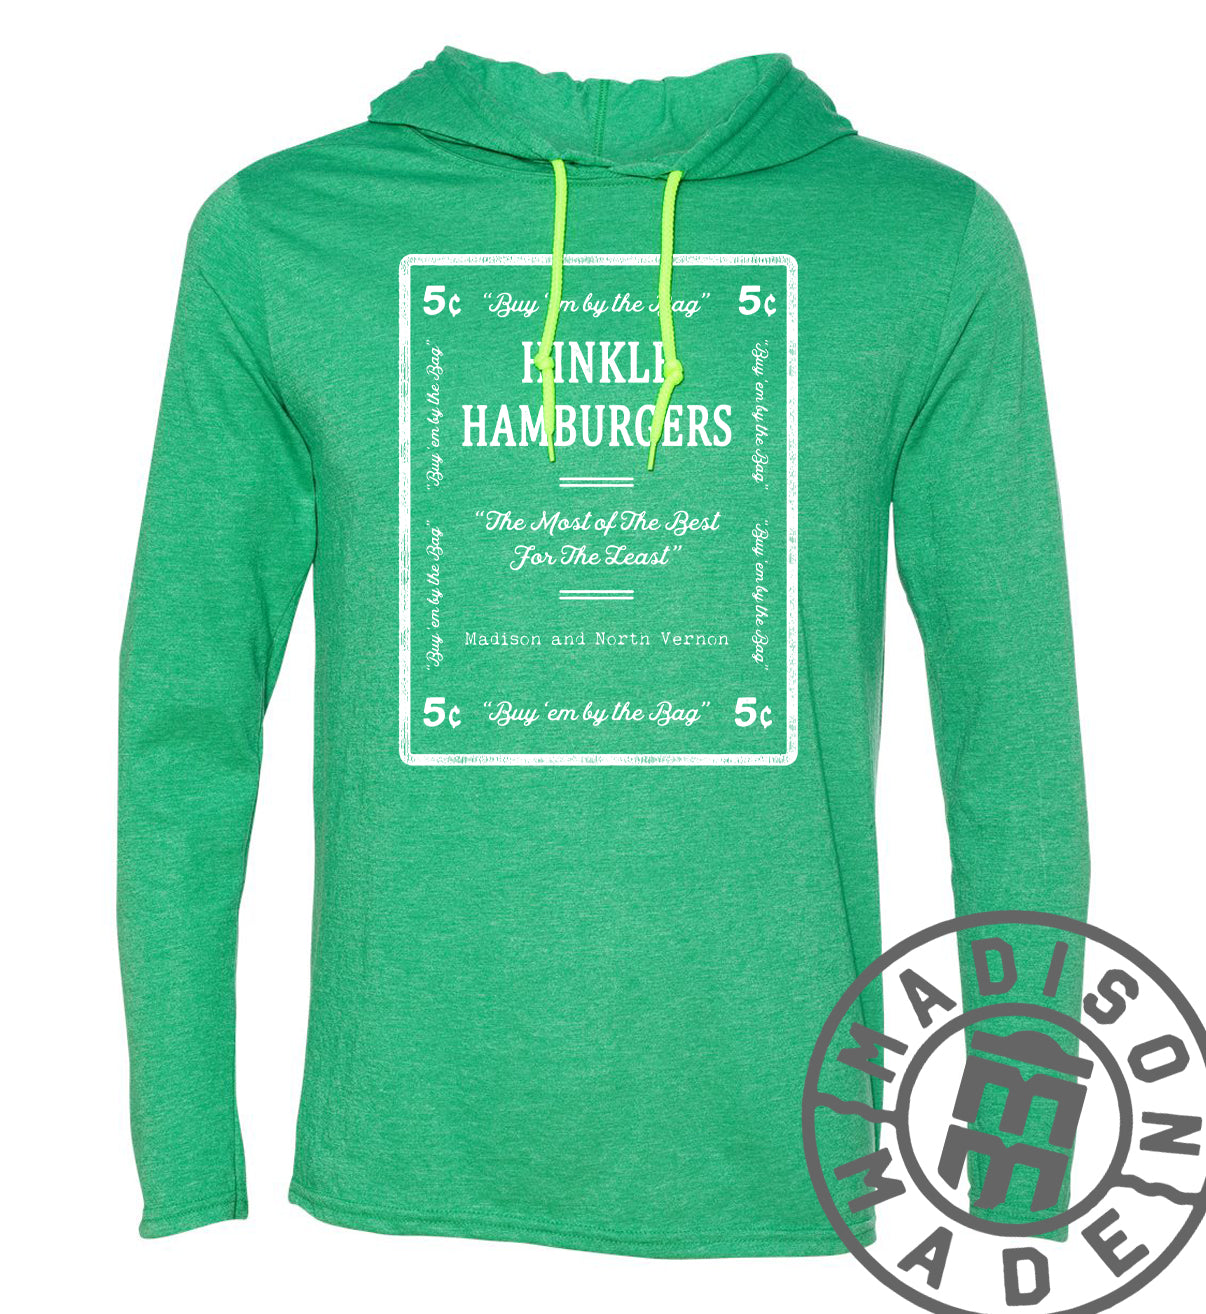 Hinkle's Long Sleeve Green Hooded Tee